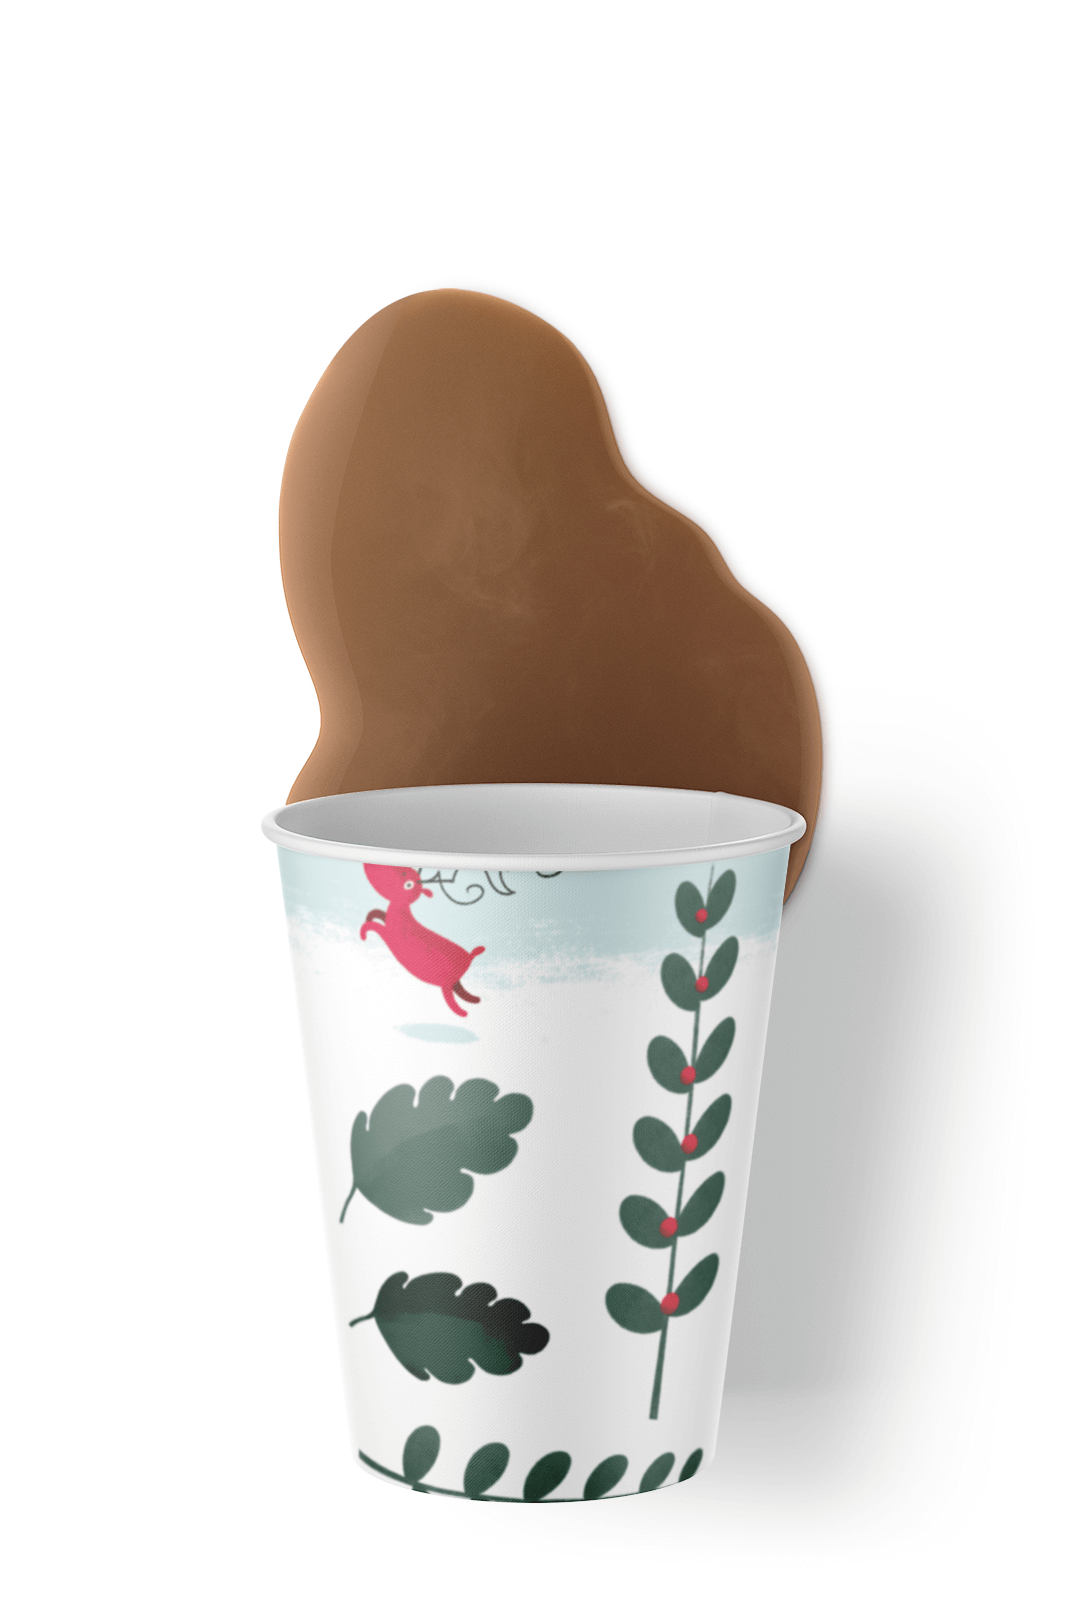 Free Paper Cup with spilled Coffee Mockup